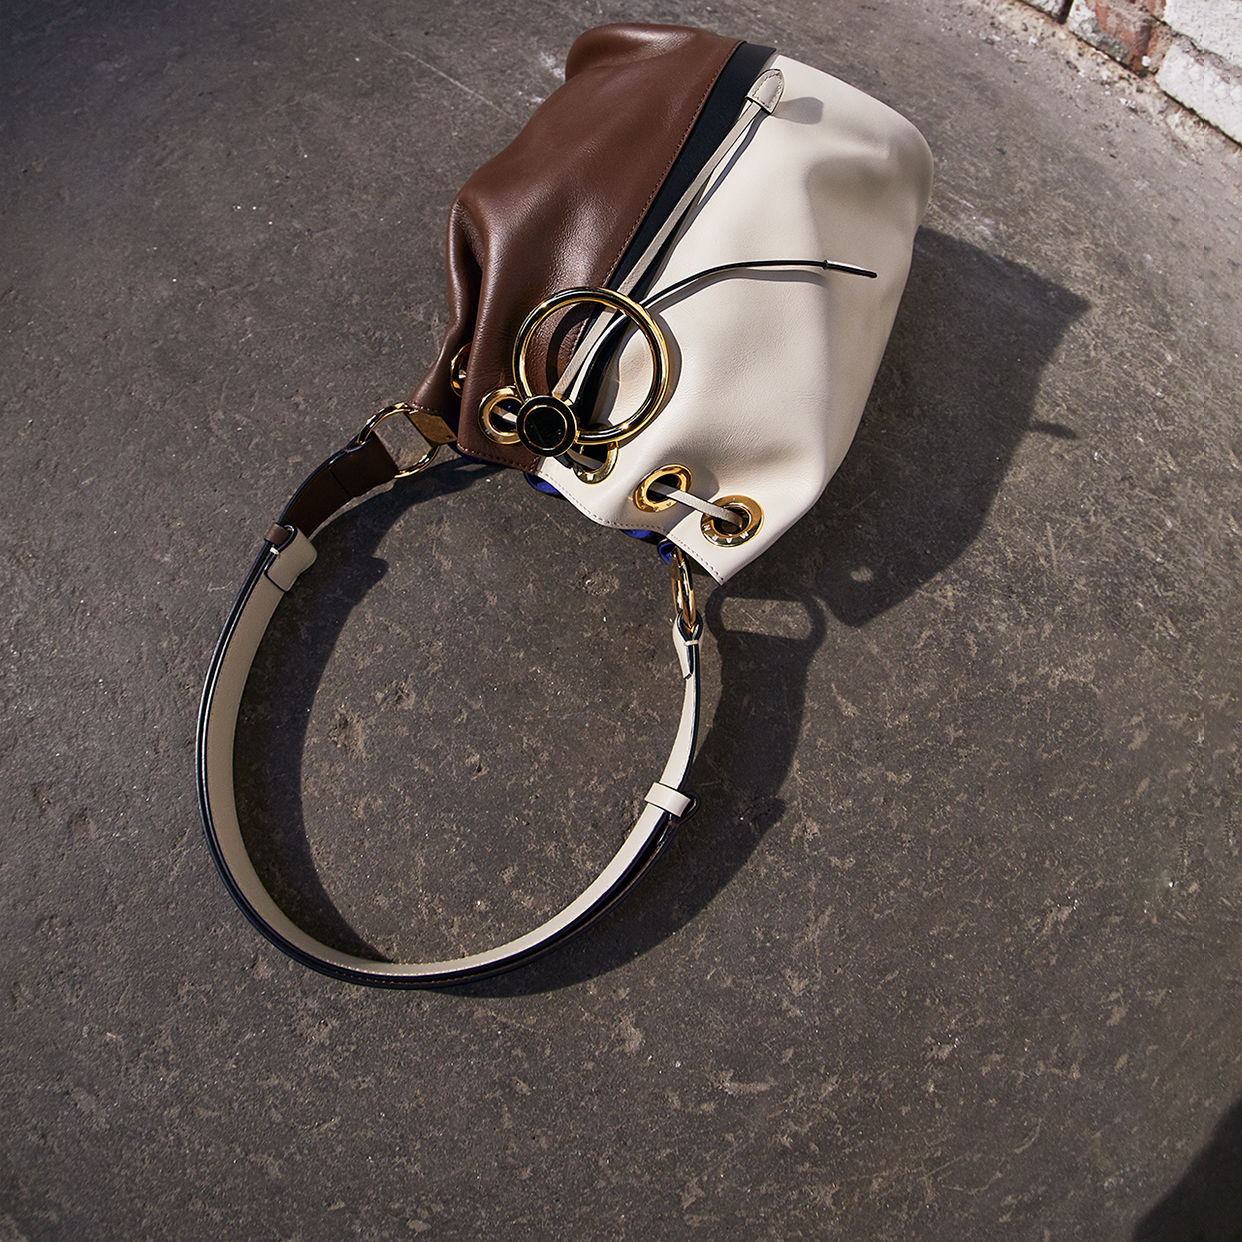 c18d4b9937bd Earring bagThe iconic gold-tone circle characterises new versions of the  must-have bag Discover